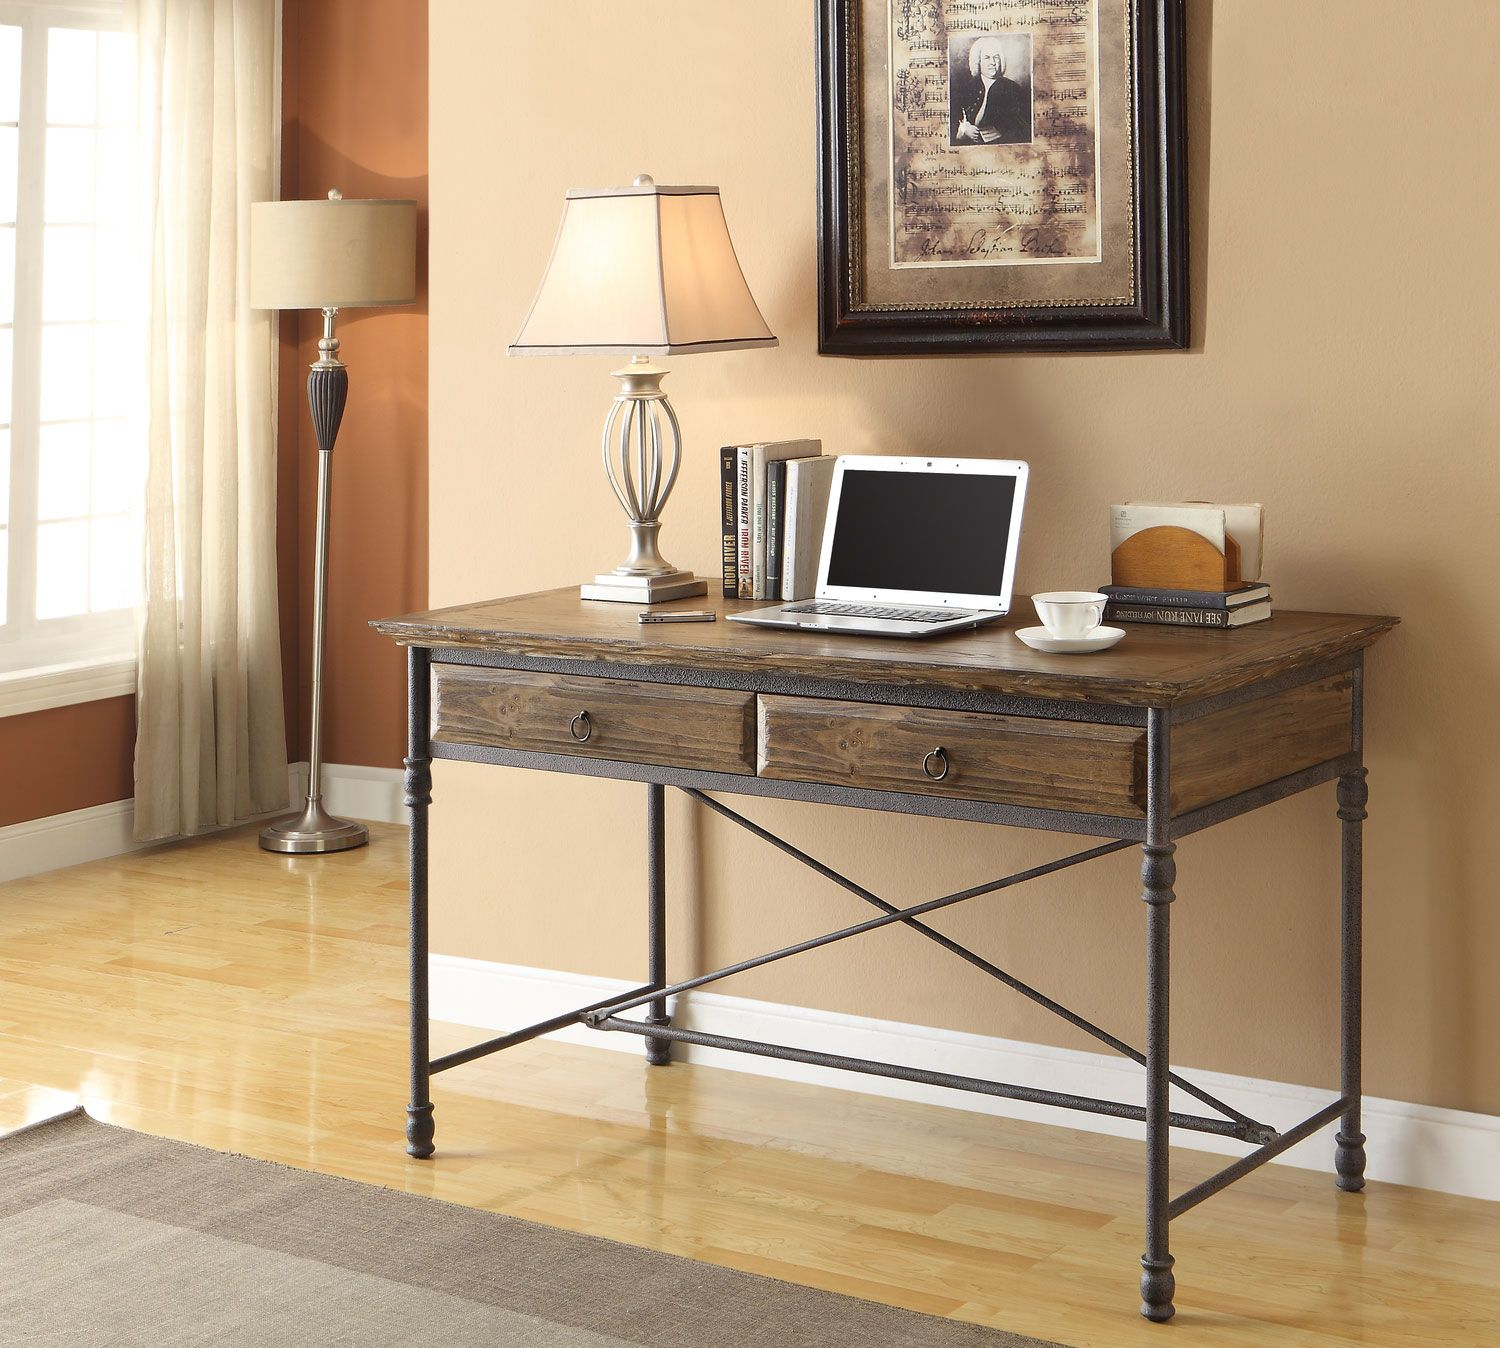 Rustic And Bold The Bedford Desk Features Natural Charm Of Reclaimed